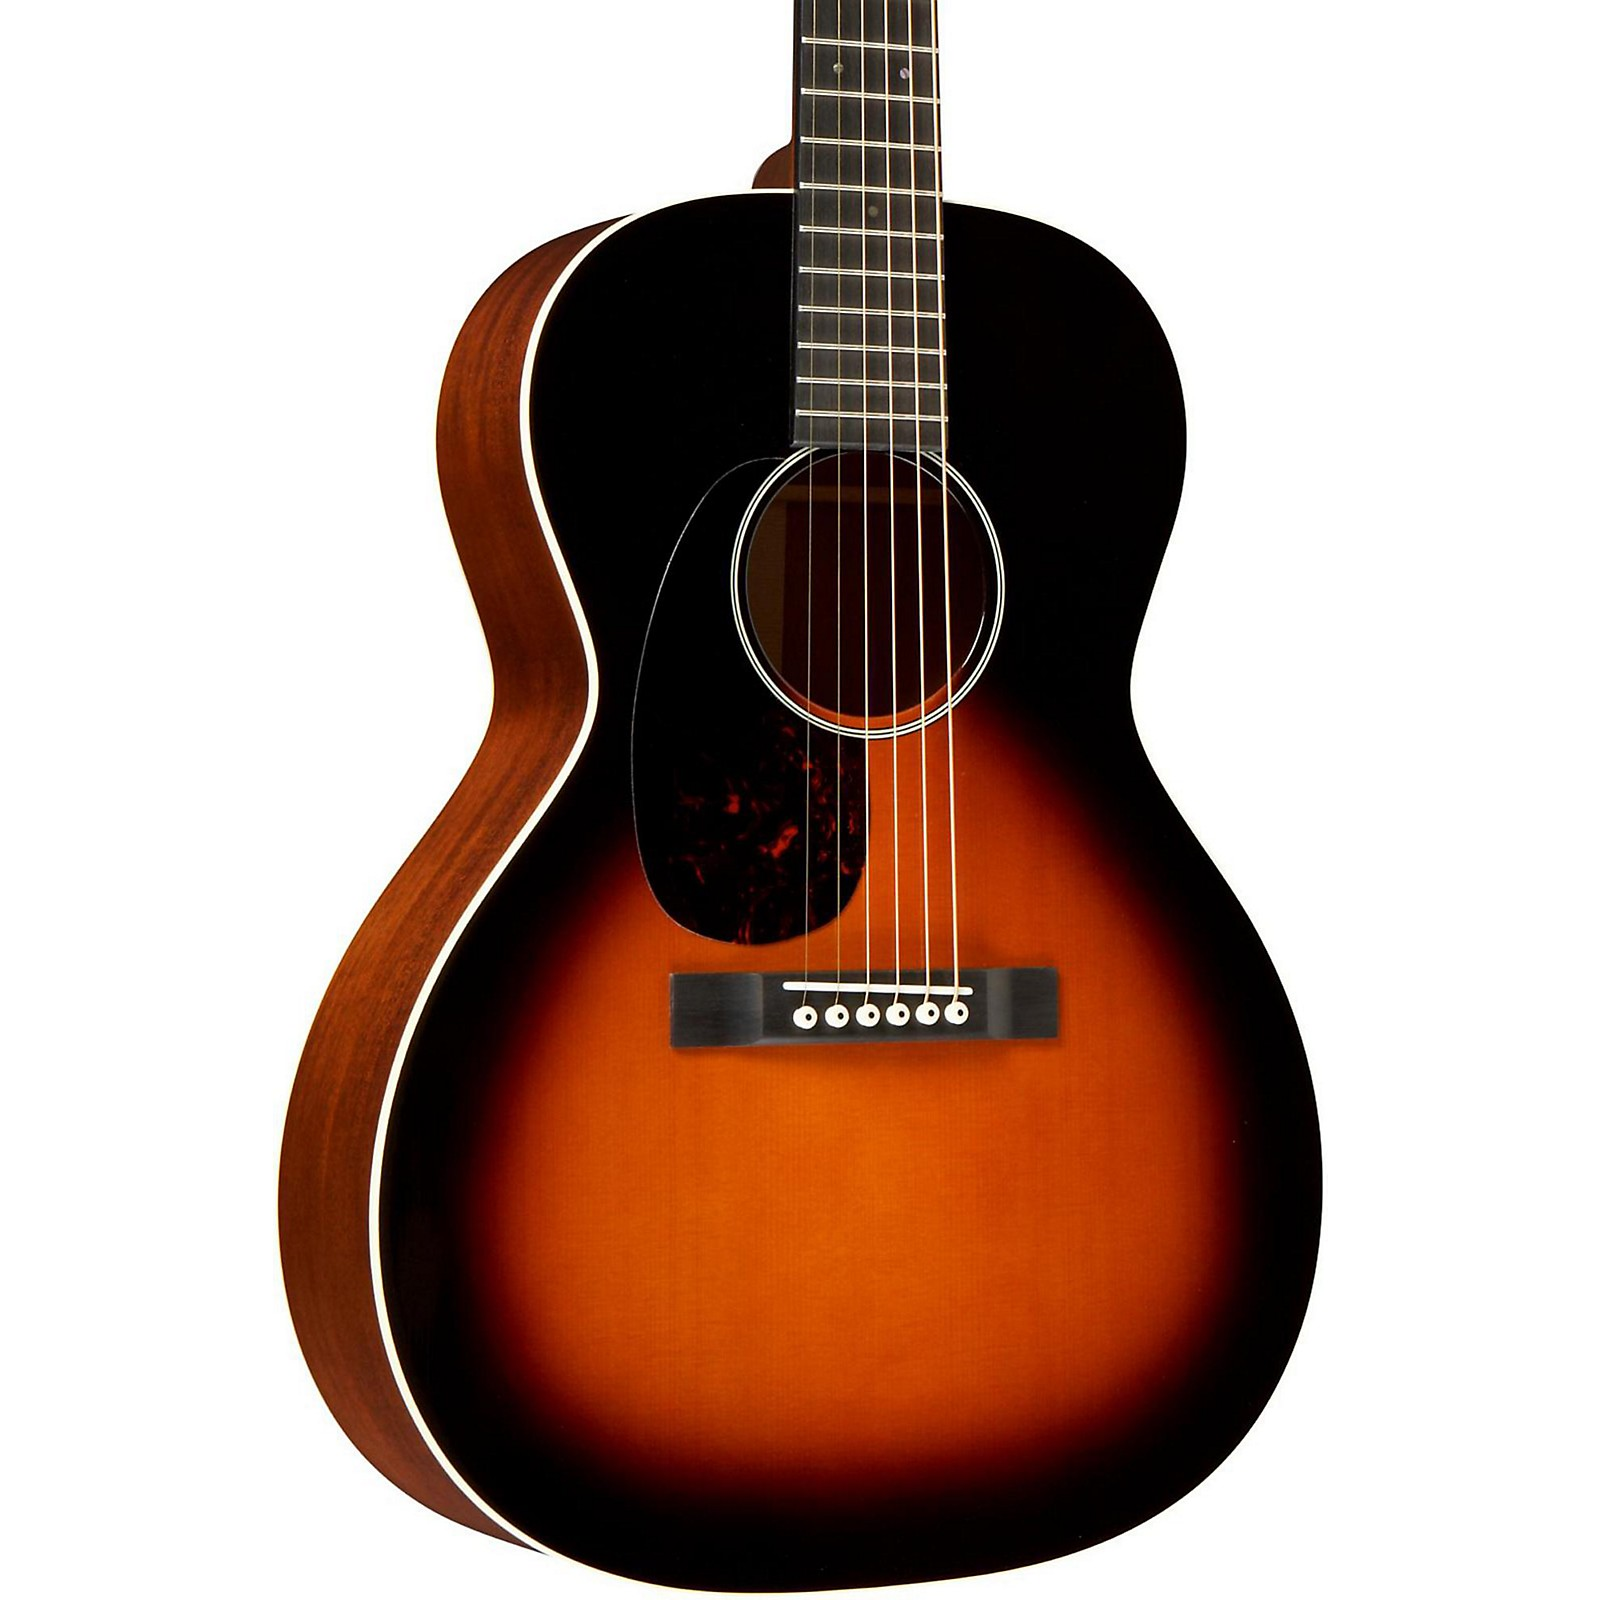 Martin CEO-7 Left-Handed Grand Concert Acoustic Guitar